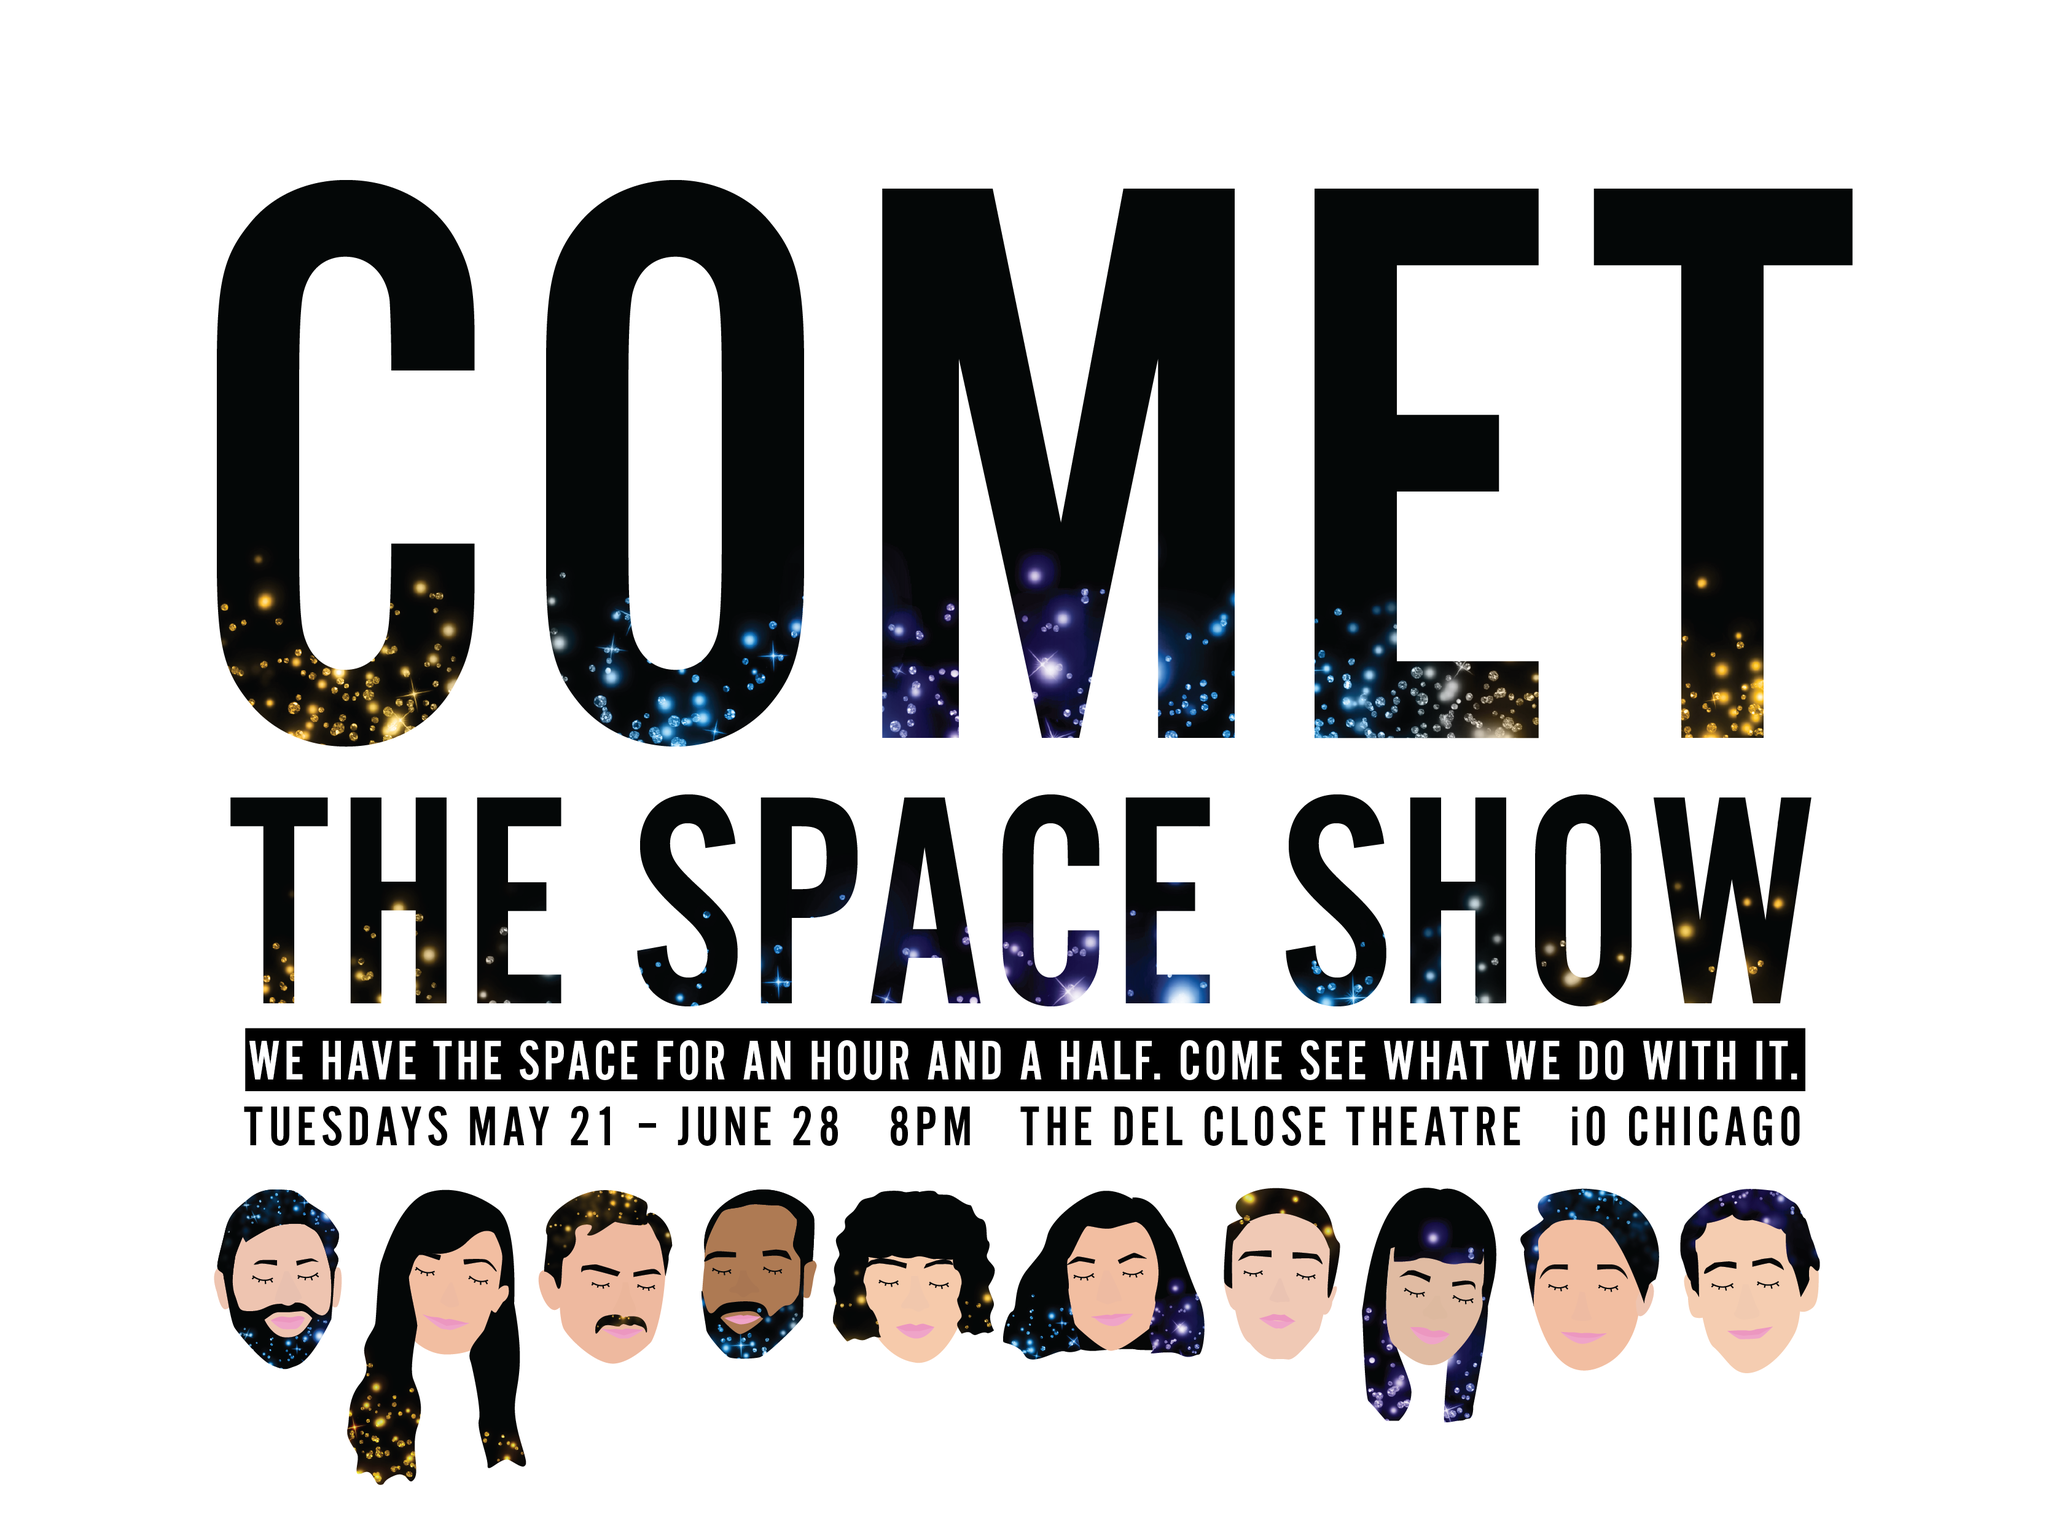 The Space Show with Comet, The Harold Daffodil, Resham Sarkar